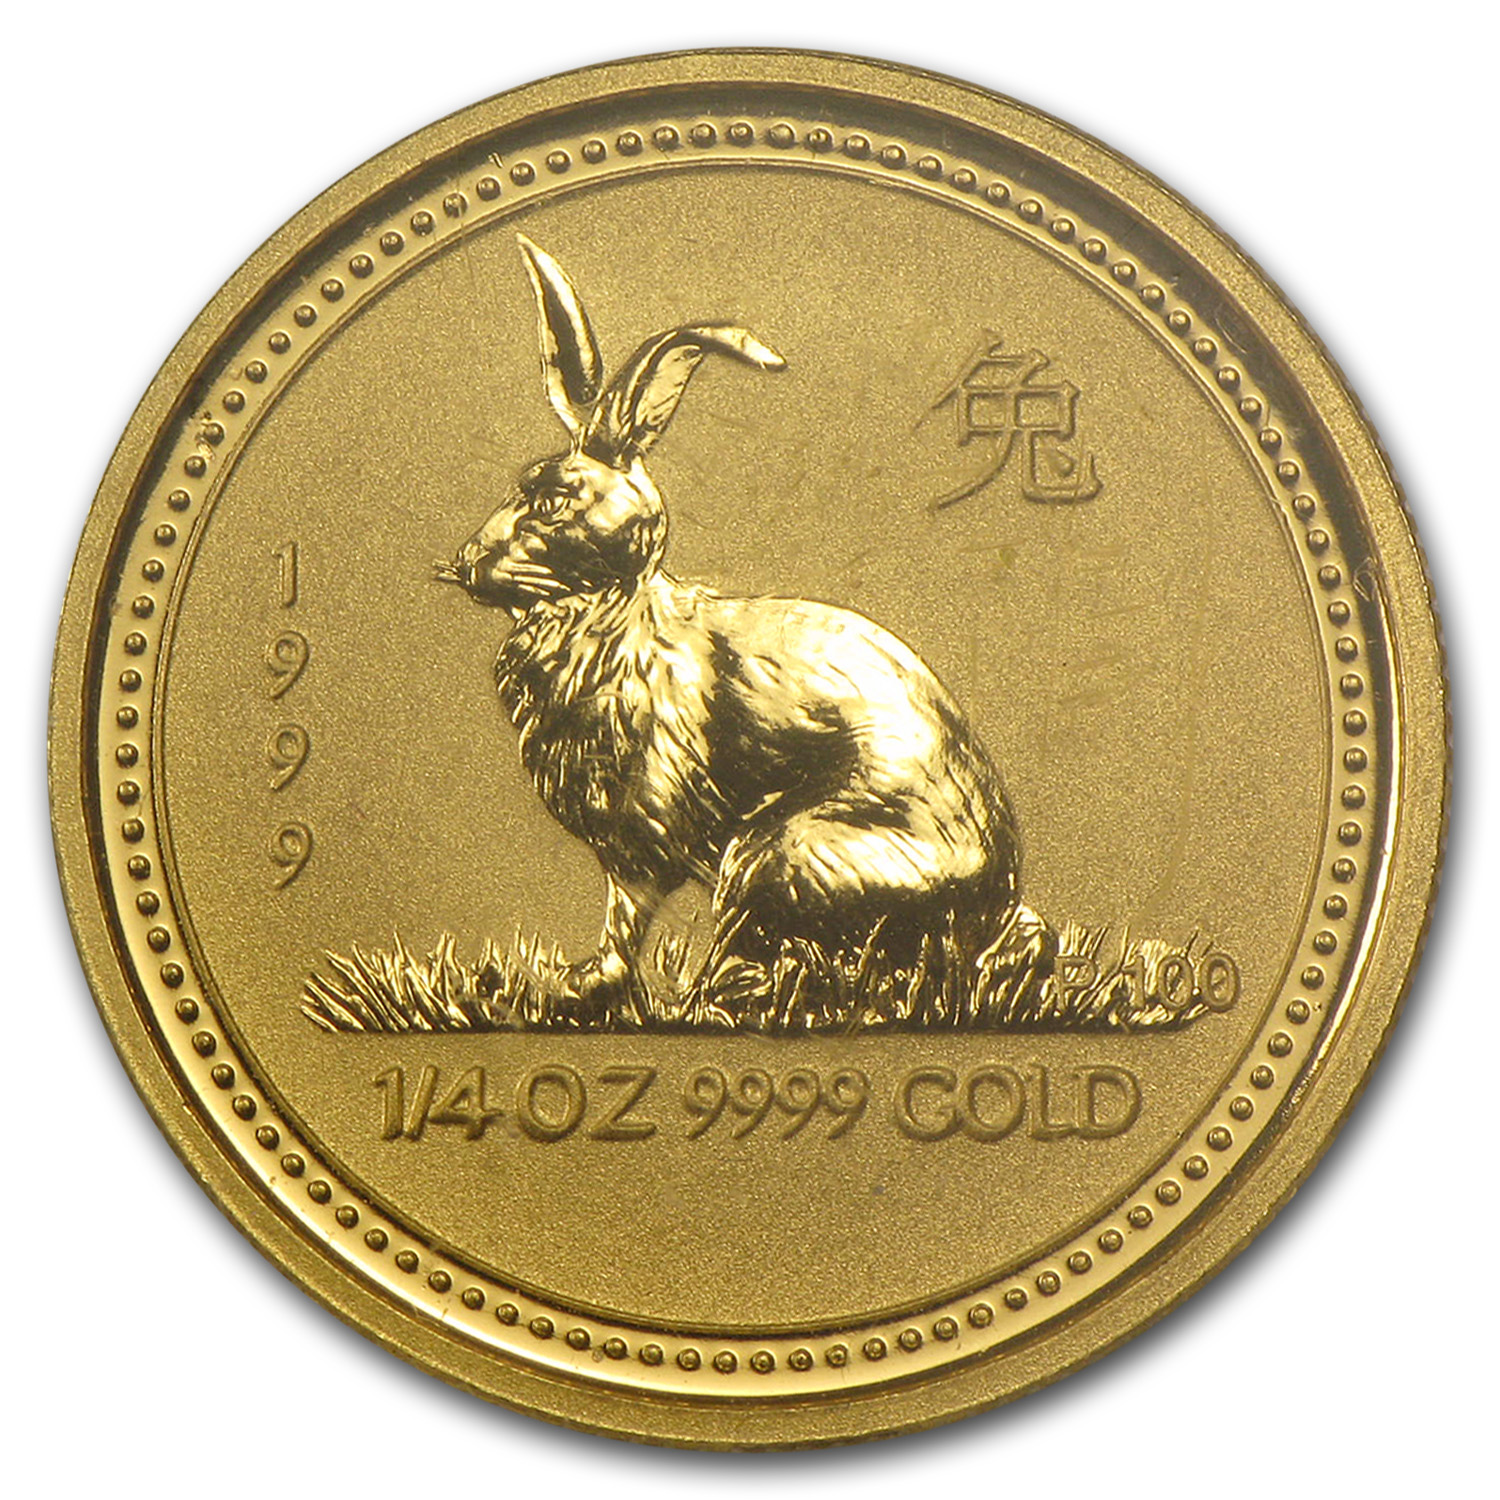 1999 Australia 1/4 oz Gold Lunar Rabbit BU (Series I)